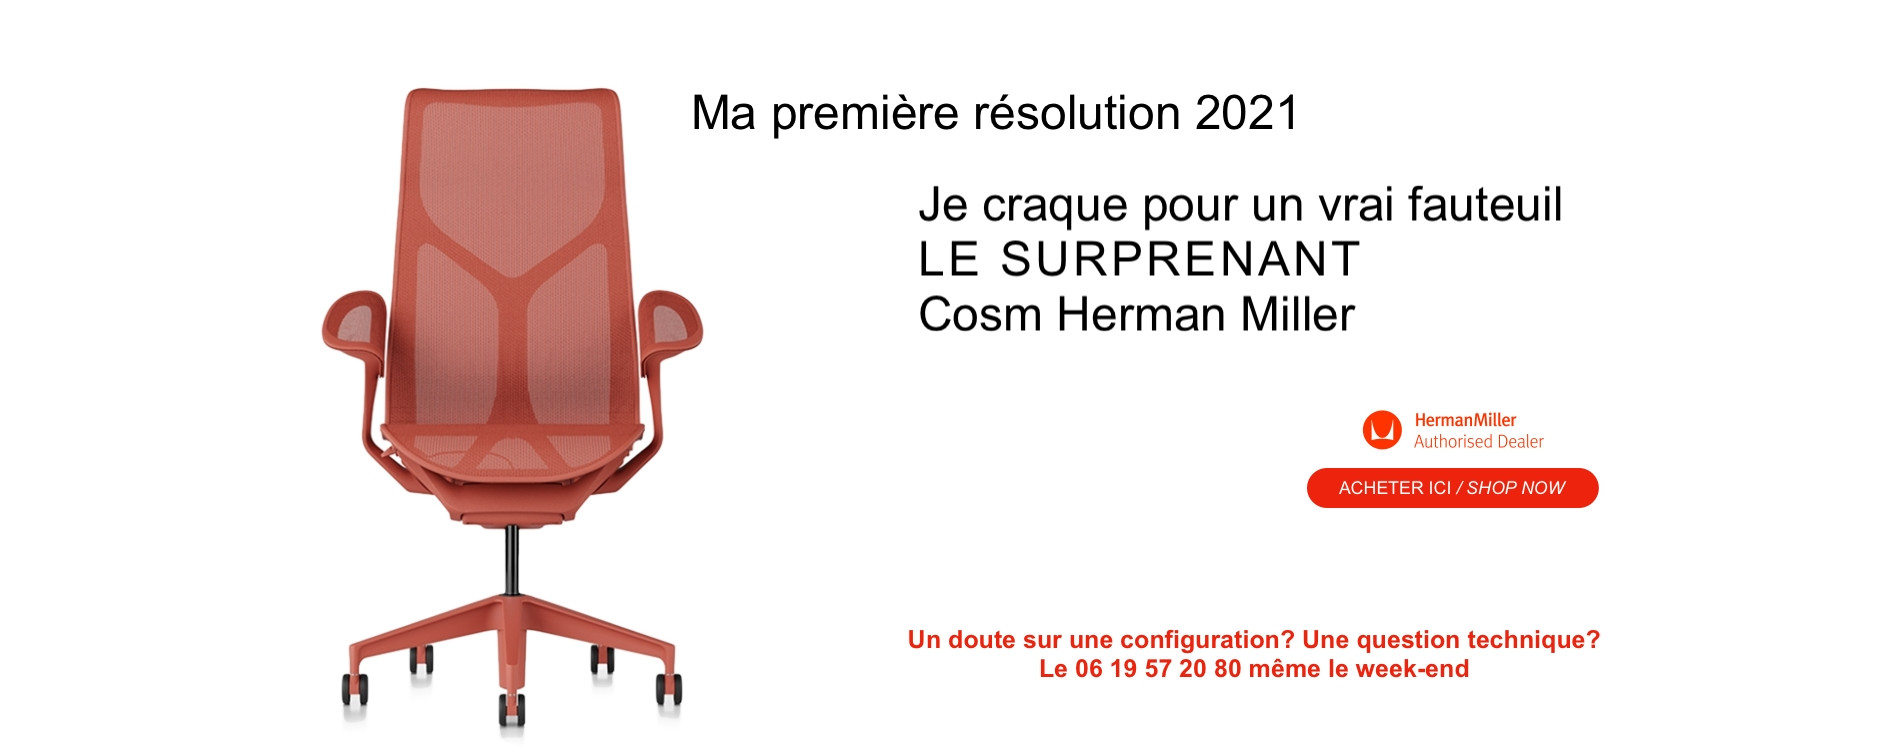 Your next chair is a Cosm Herman Miller